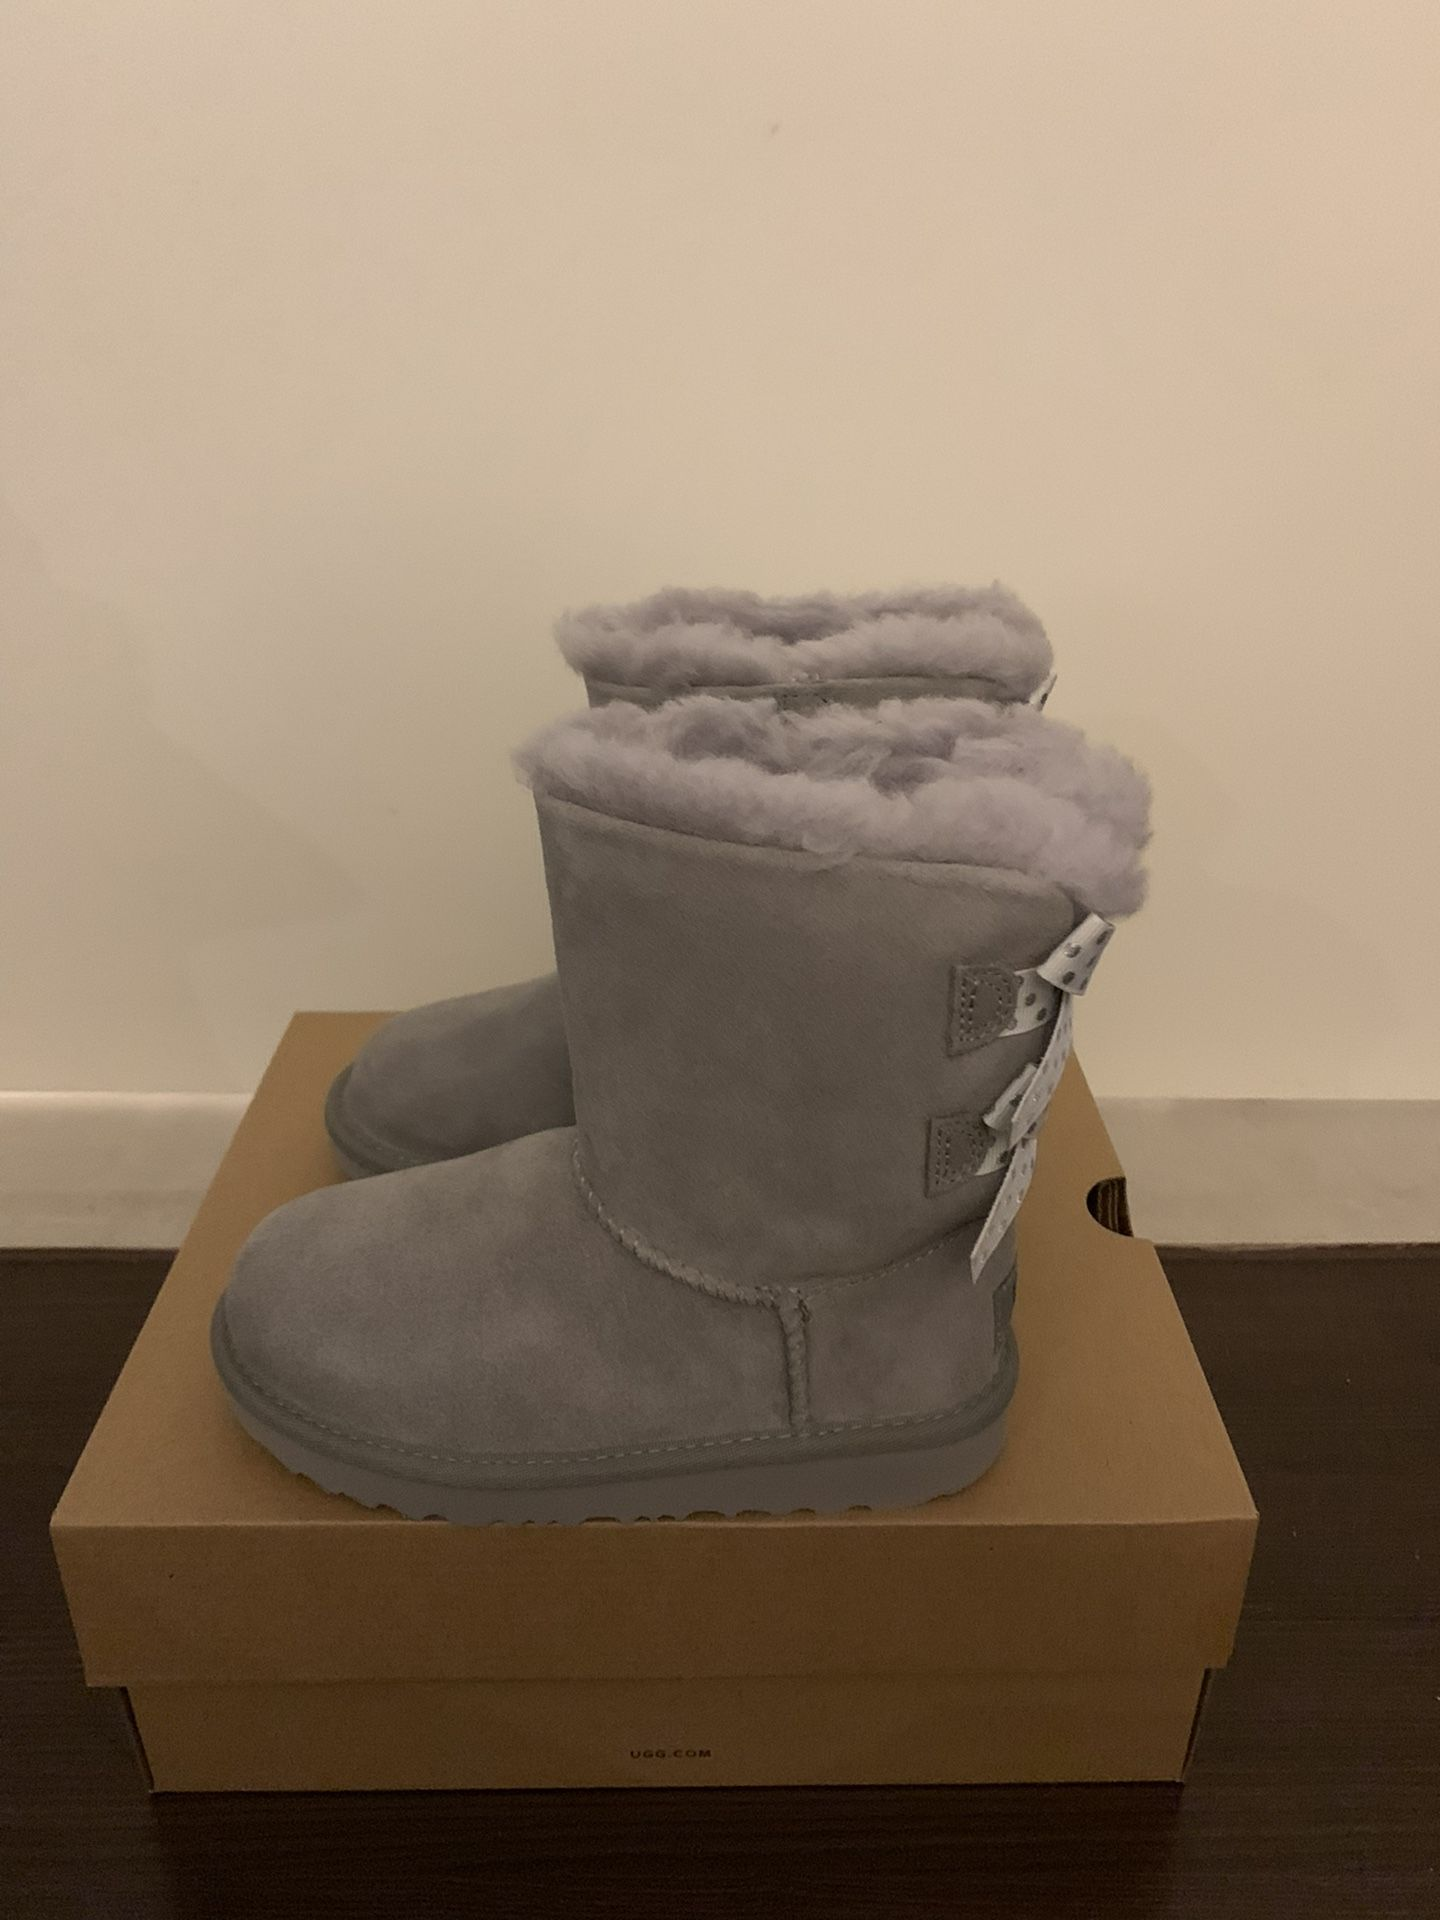 100% Authentic Brand New in Box UGG Bailey Bow Polka Boots / Color: Grey / Toddler size 7 and 11